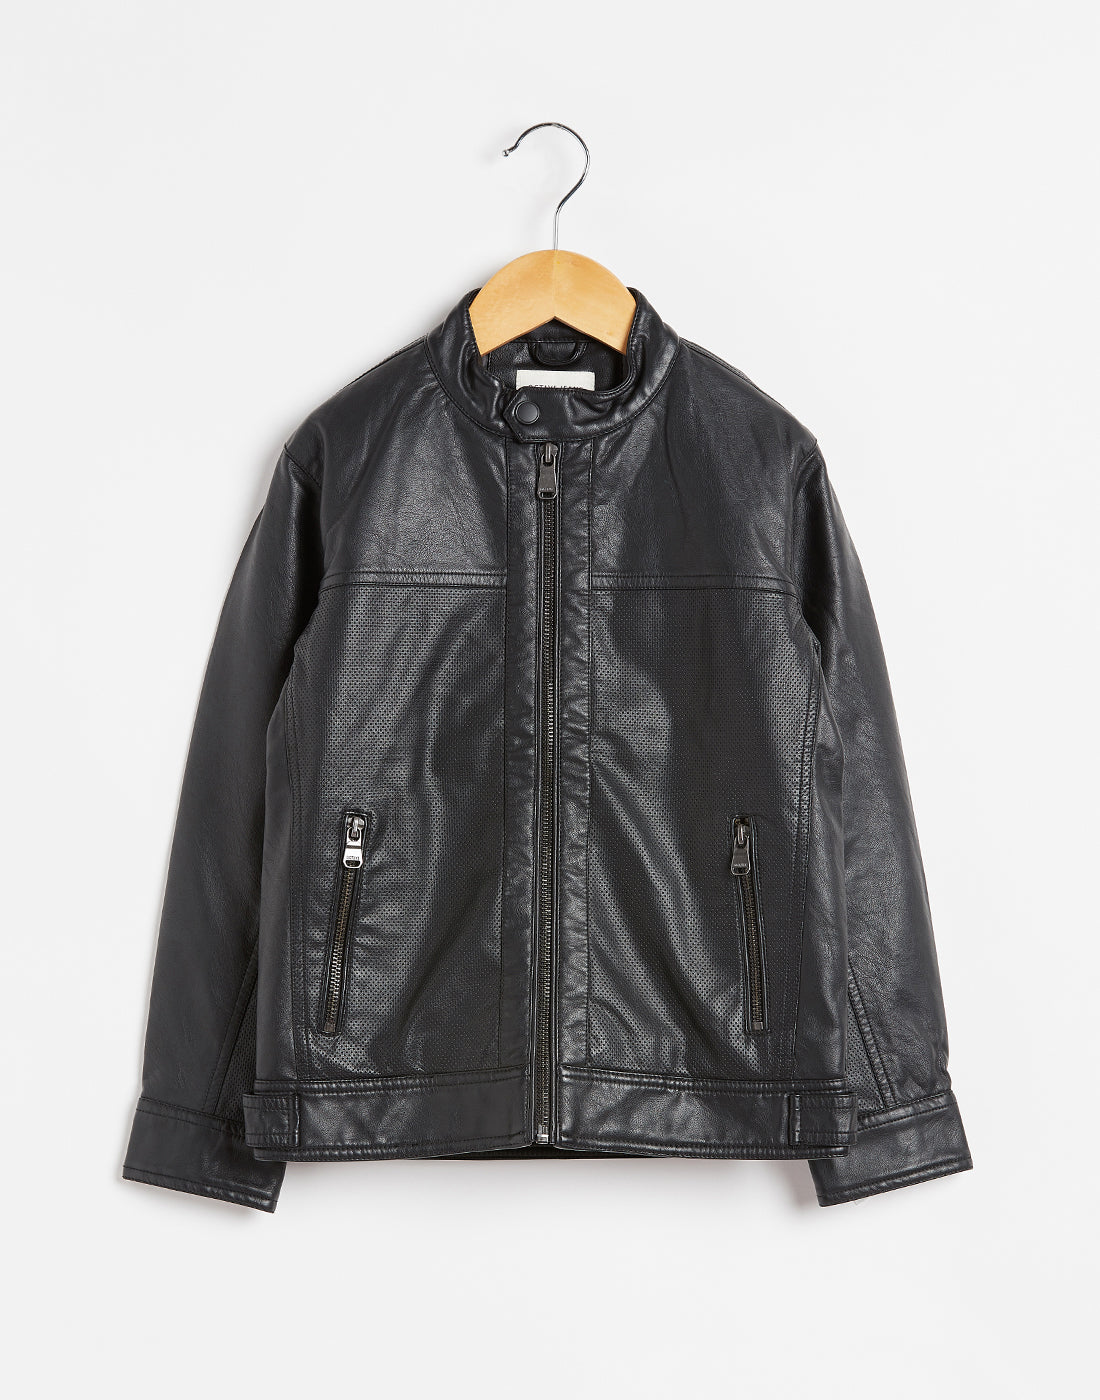 Octave Boys Black Leather Jacket